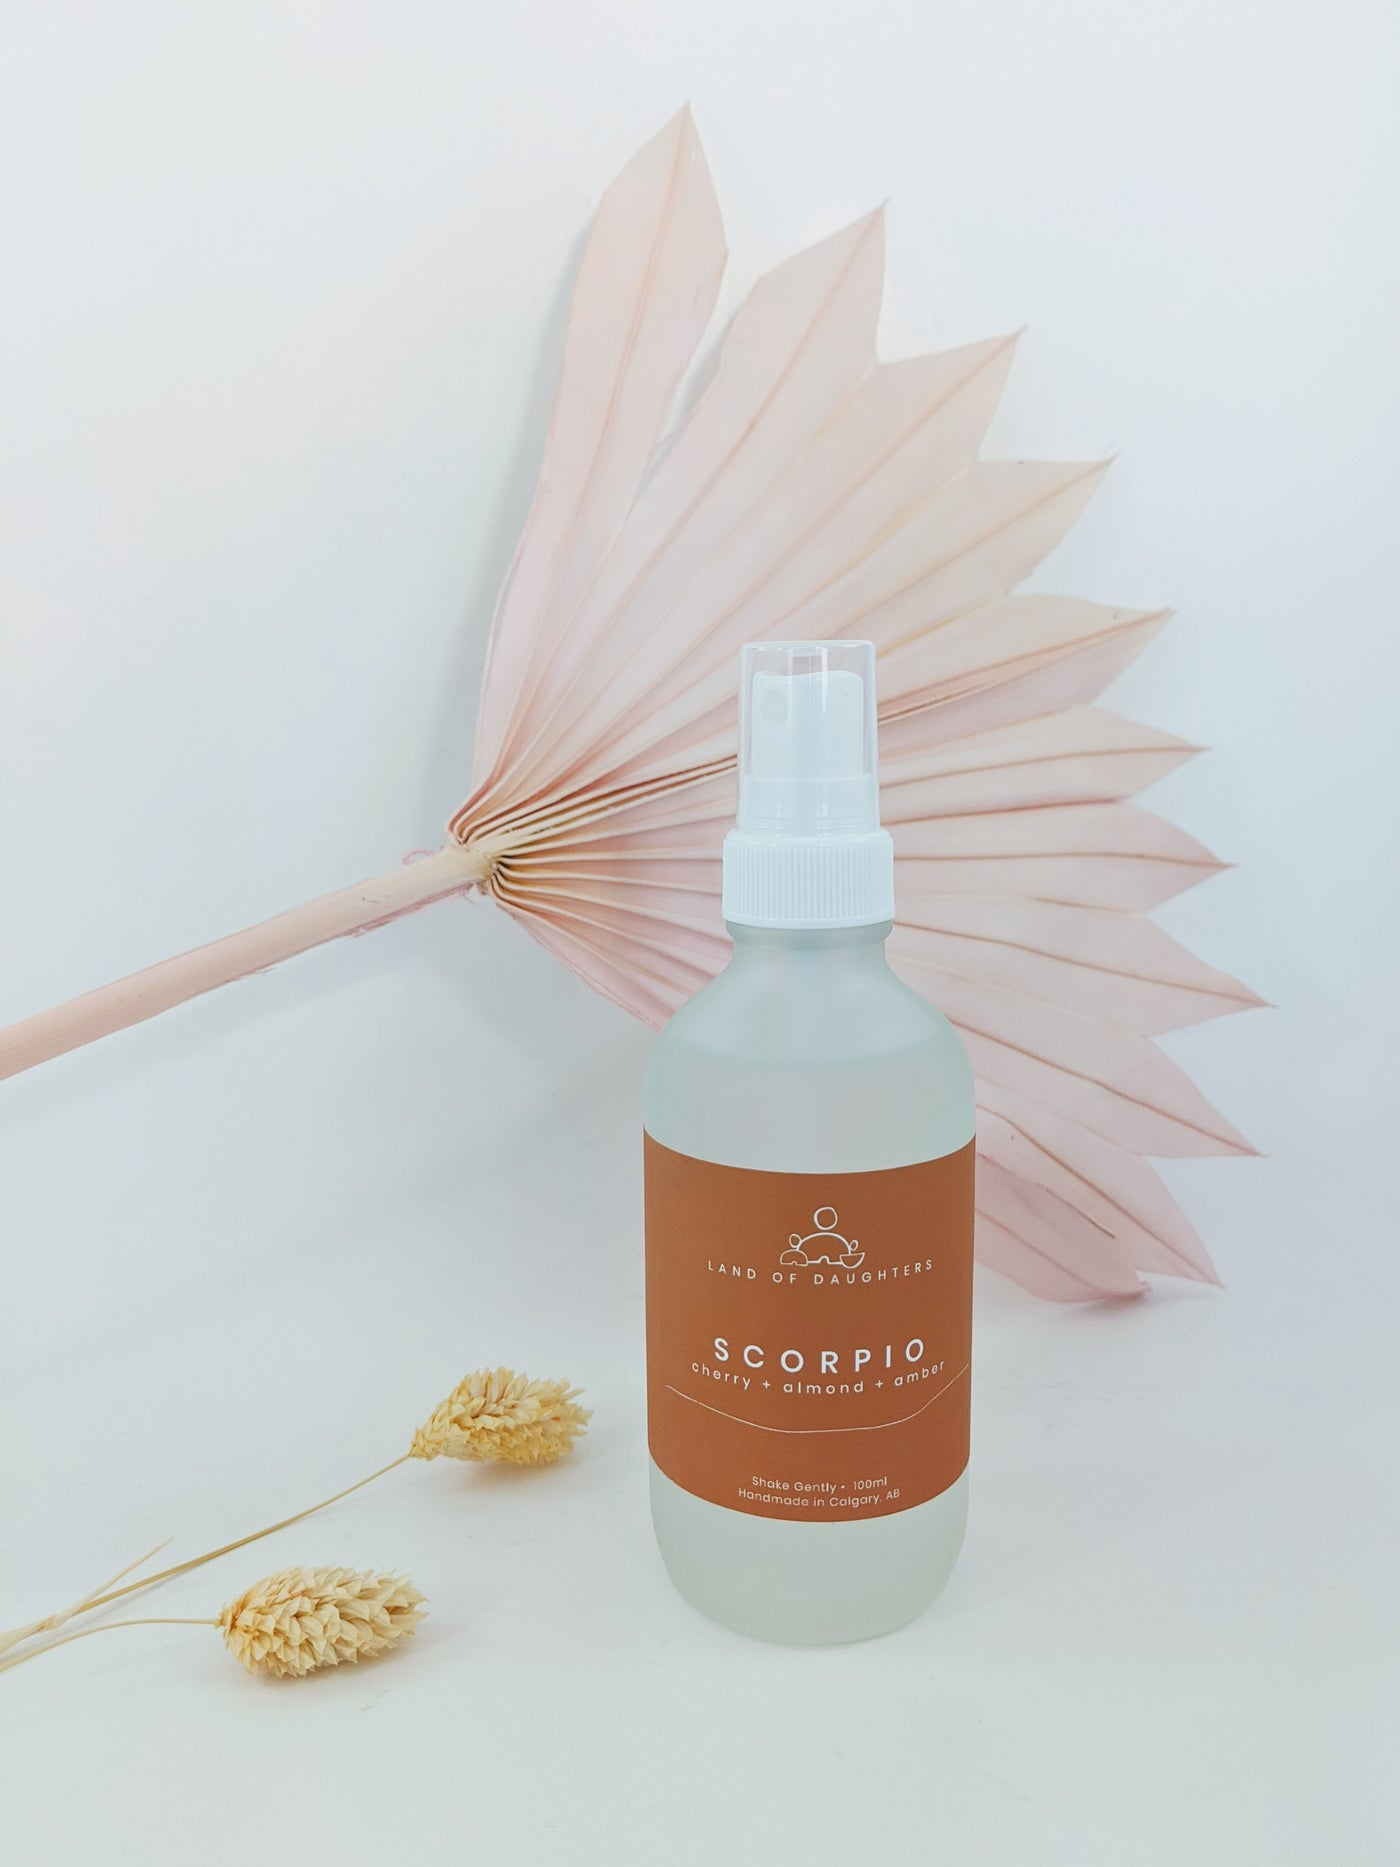 Scorpio aroma spray by Land of Daughters available at Local Assembly